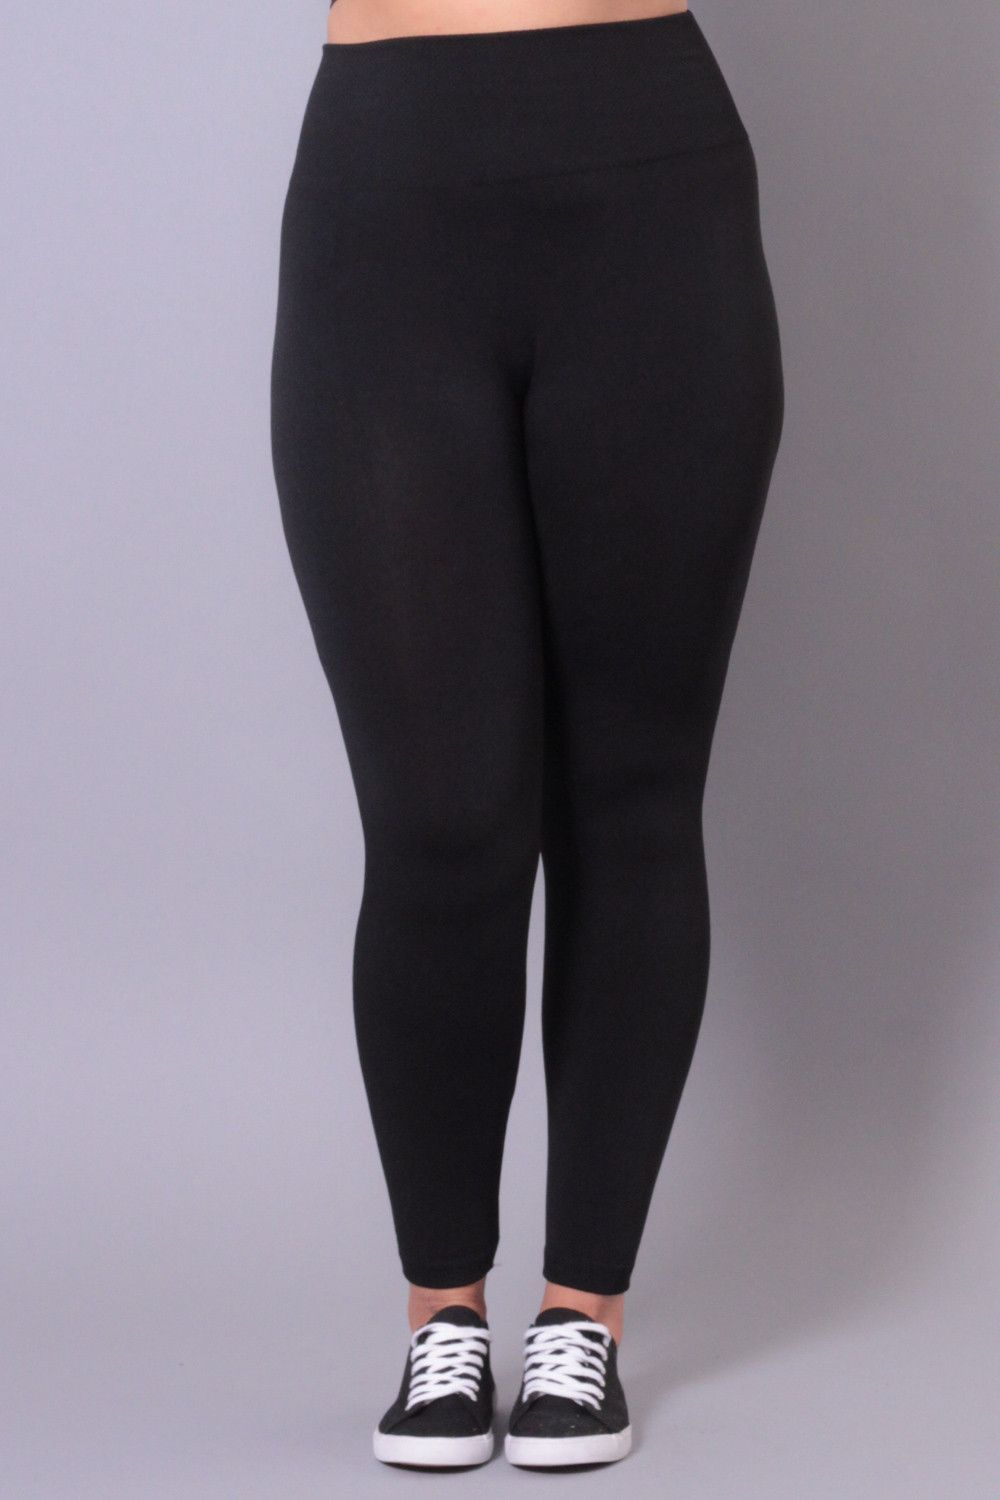 Plus Size Knit Leggings - Black